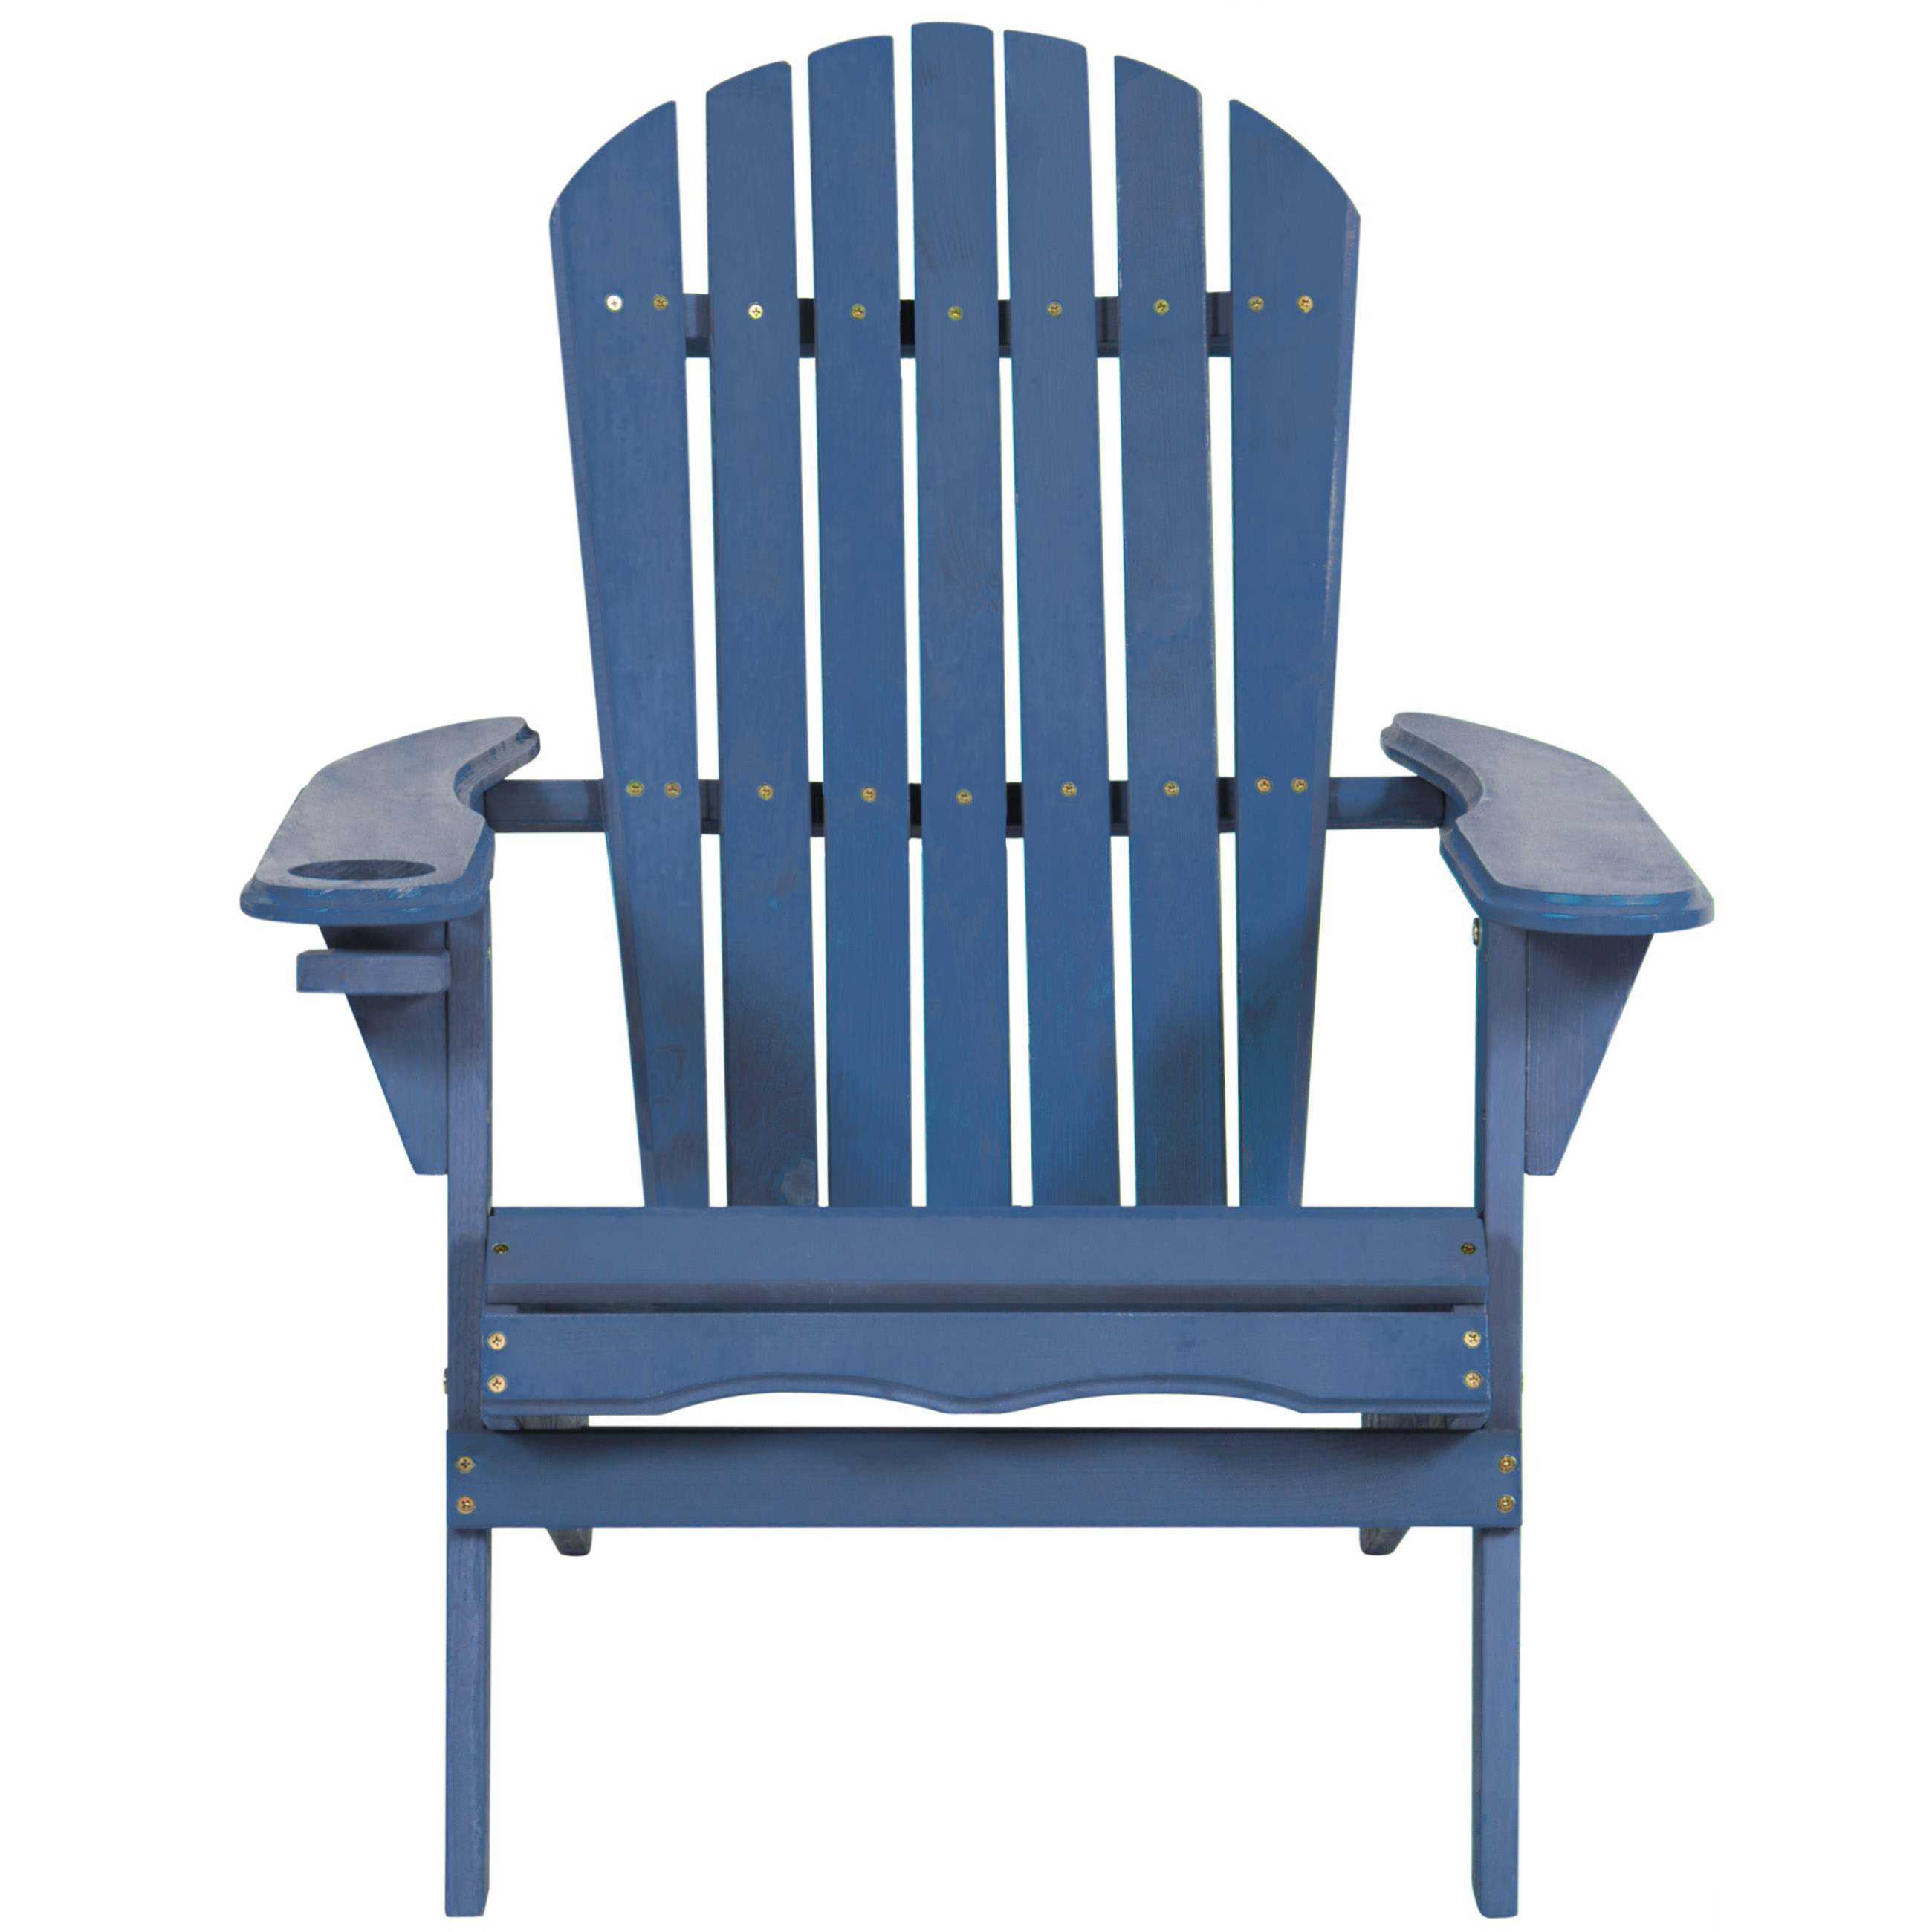 Foldable Adirondack Chair Outdoor Patio Folding Wooden Adirondack Chair W Cup